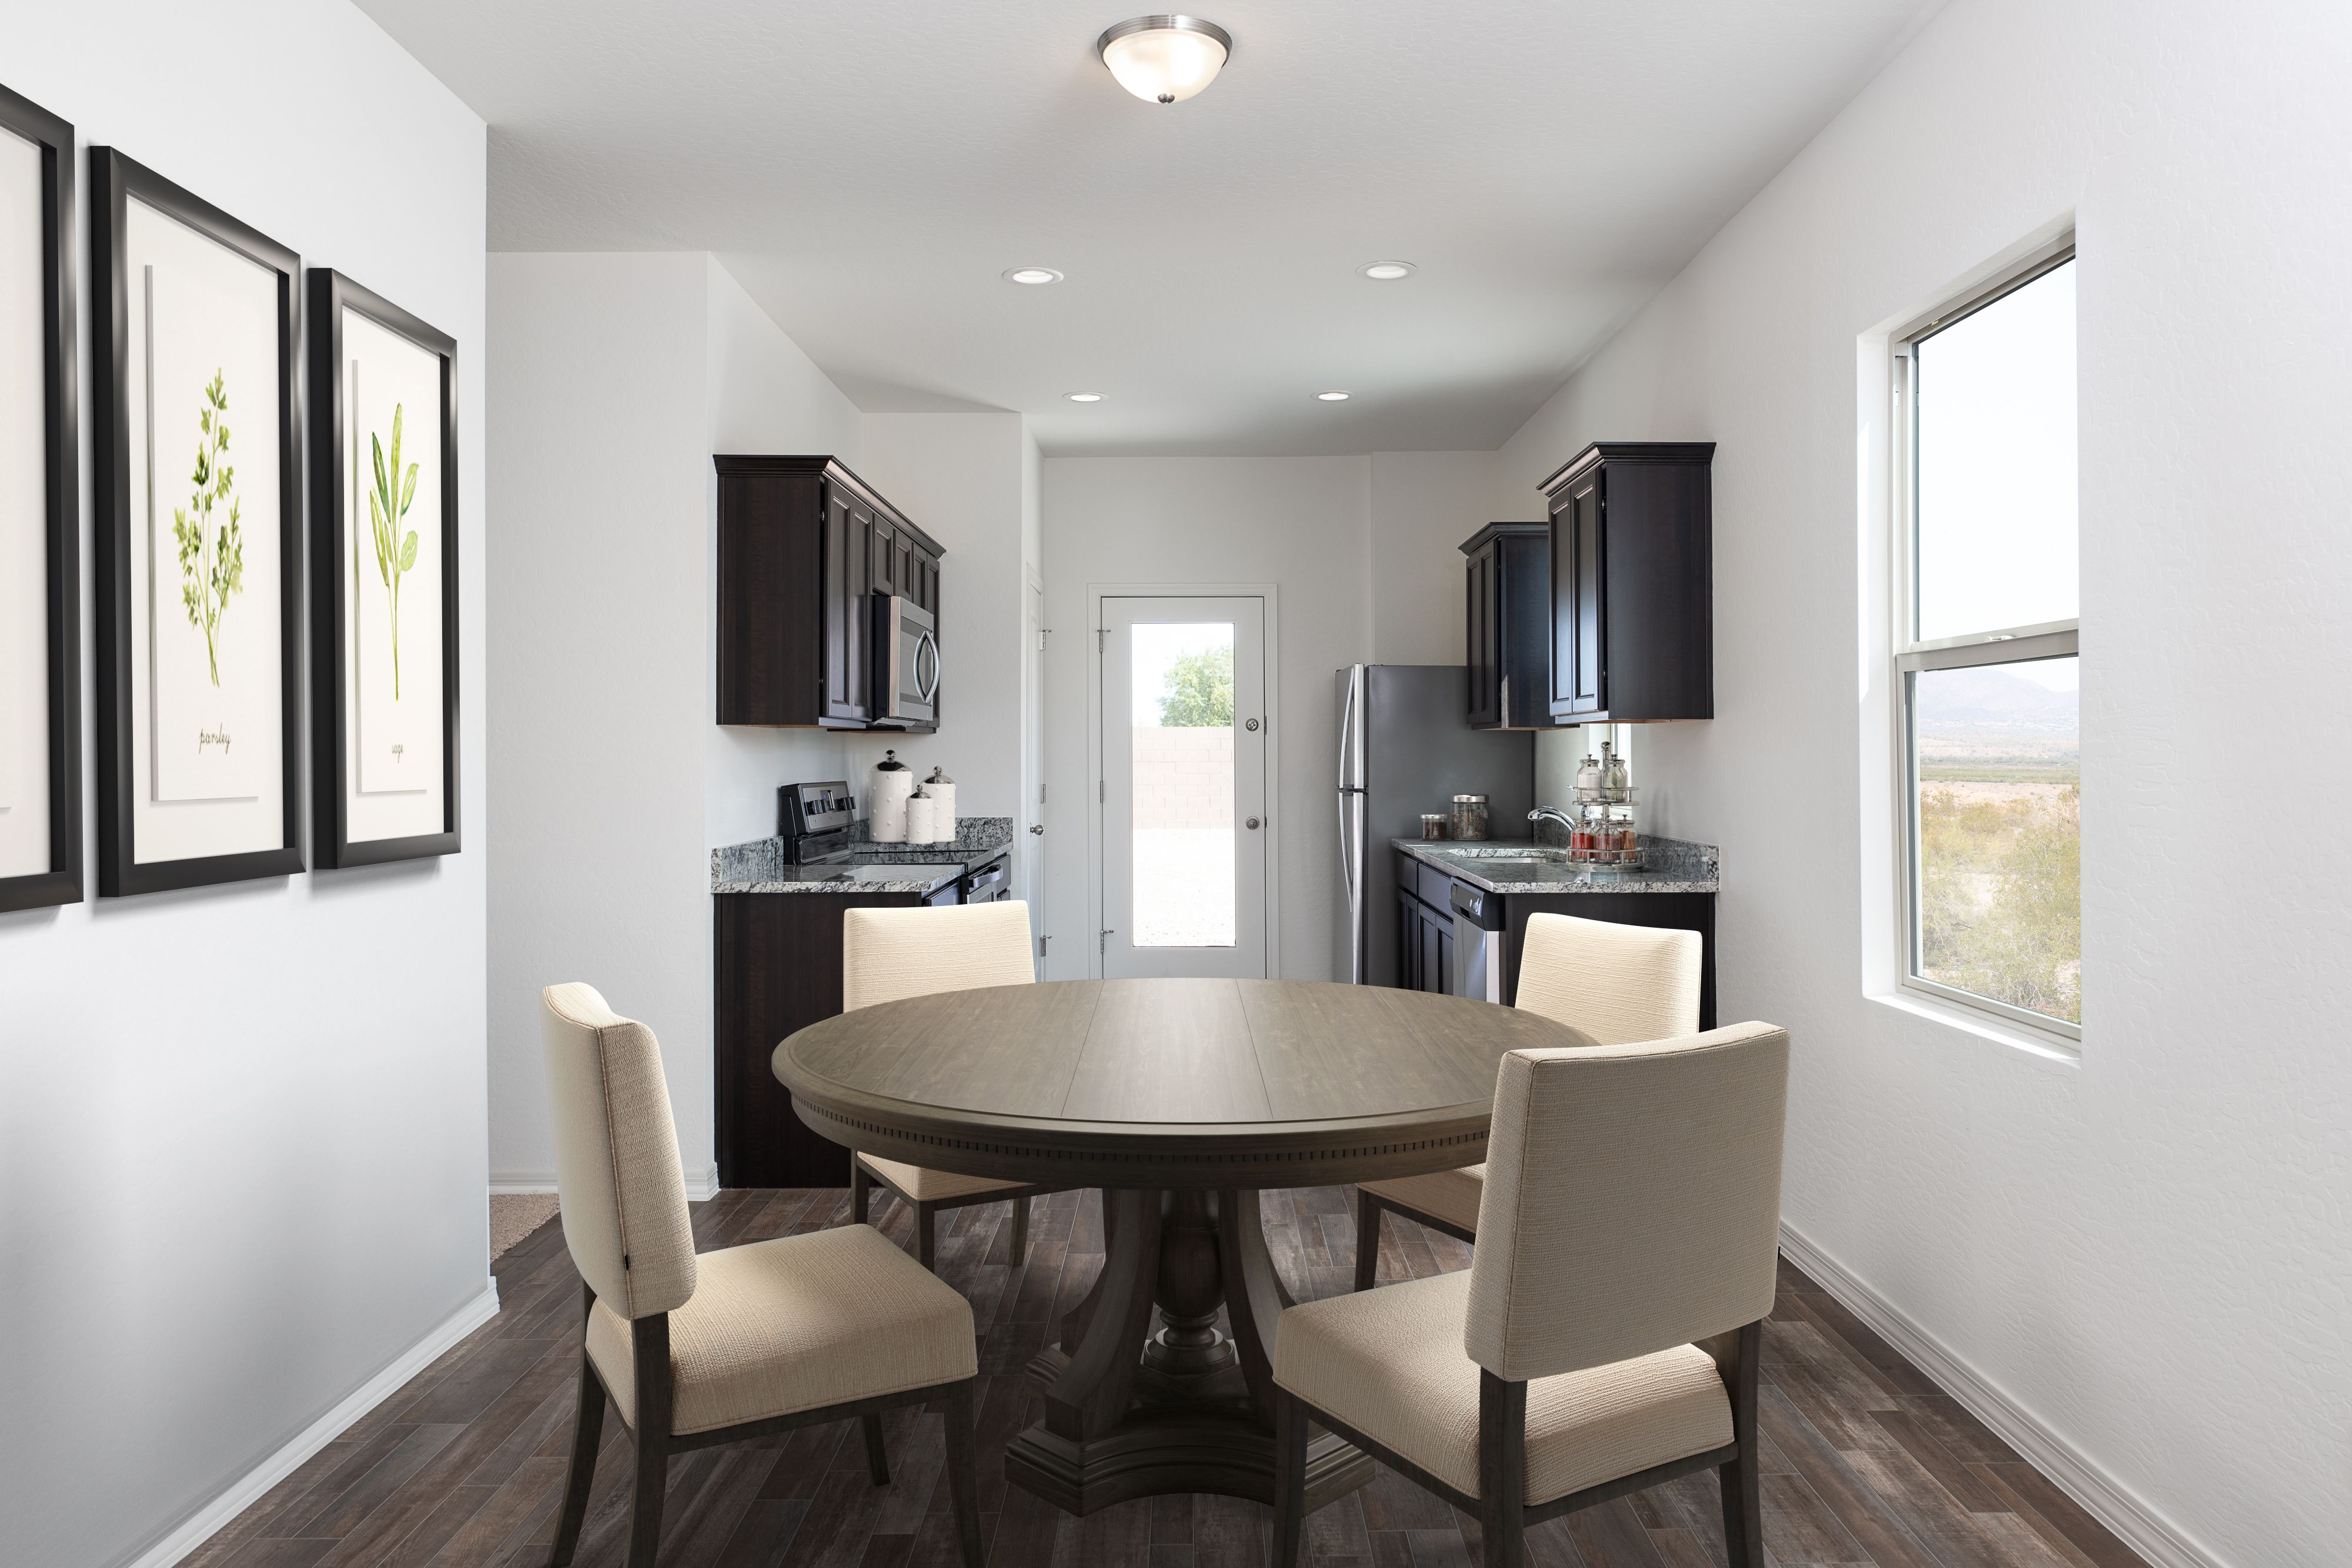 Kitchen featured in the Comet By Starlight Homes in San Antonio, TX